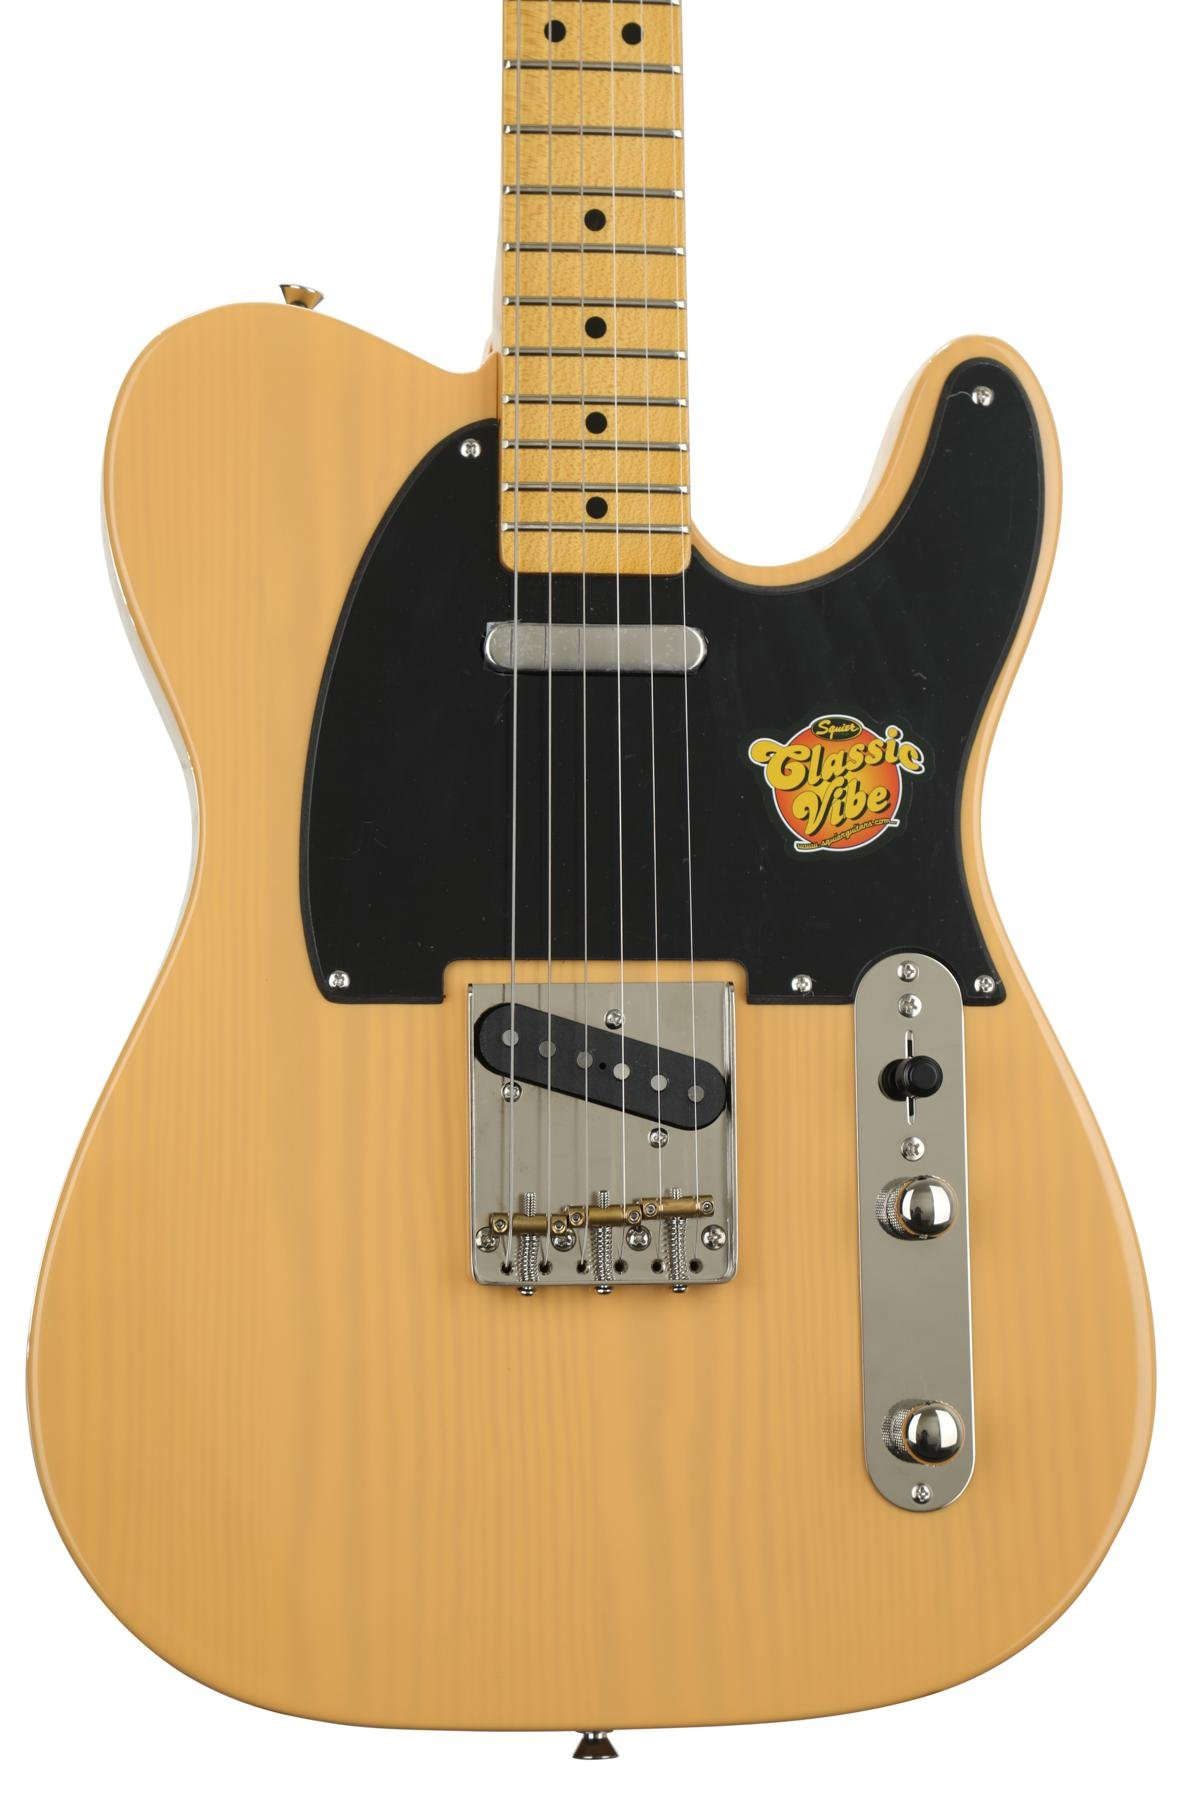 Squier Classic Vibe Telecaster 50s Butterscotch Blonde Sweetwater 4 Way Wiring Image 1